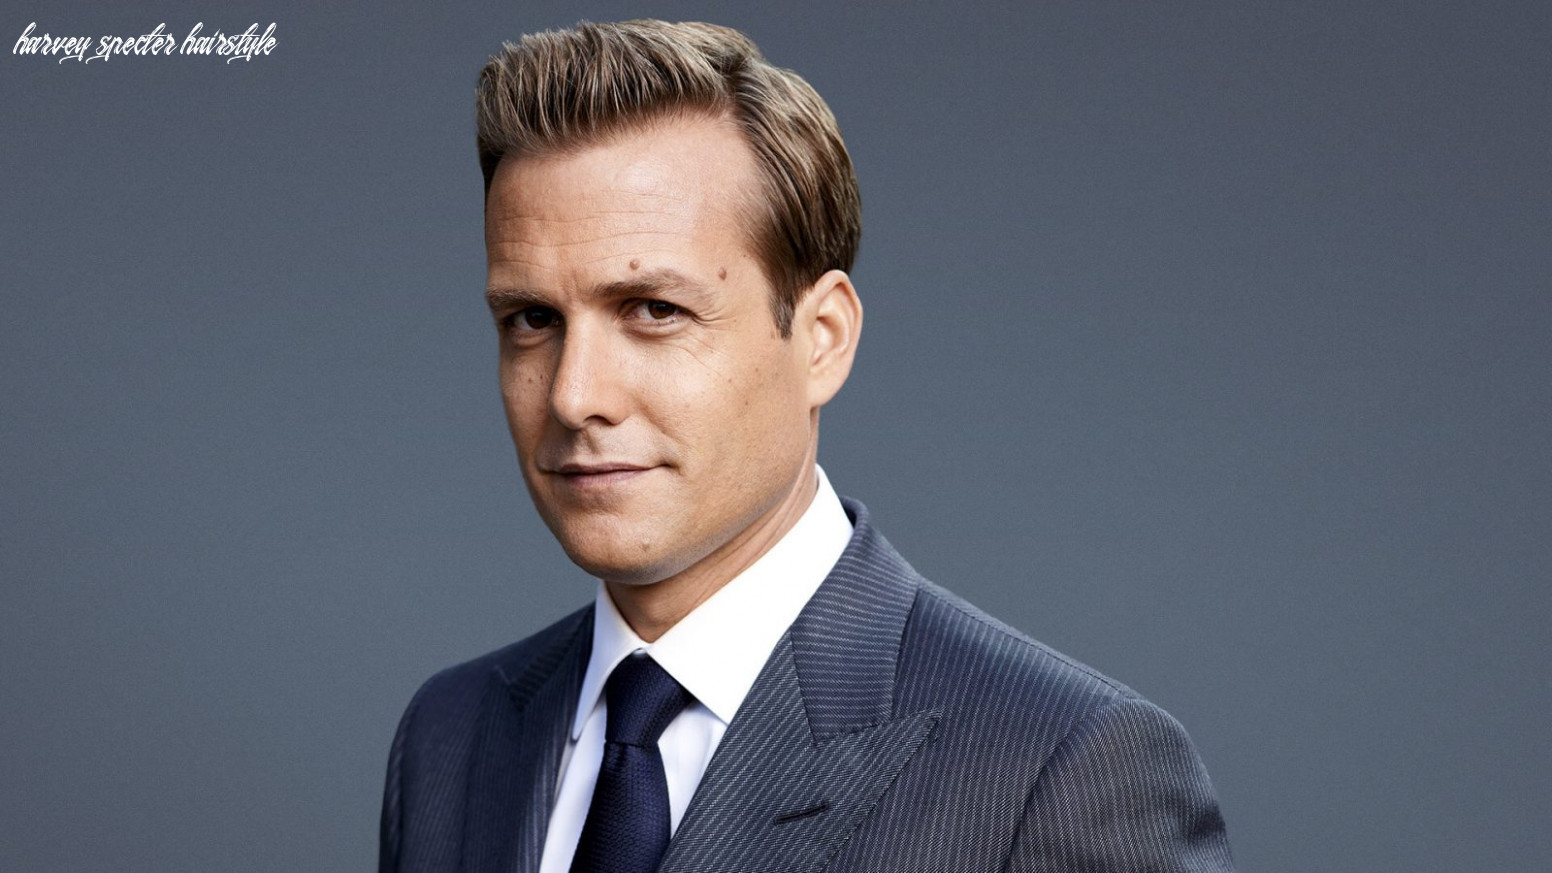 How to get harvey specter haircut? | best barber shop midtown harvey specter hairstyle